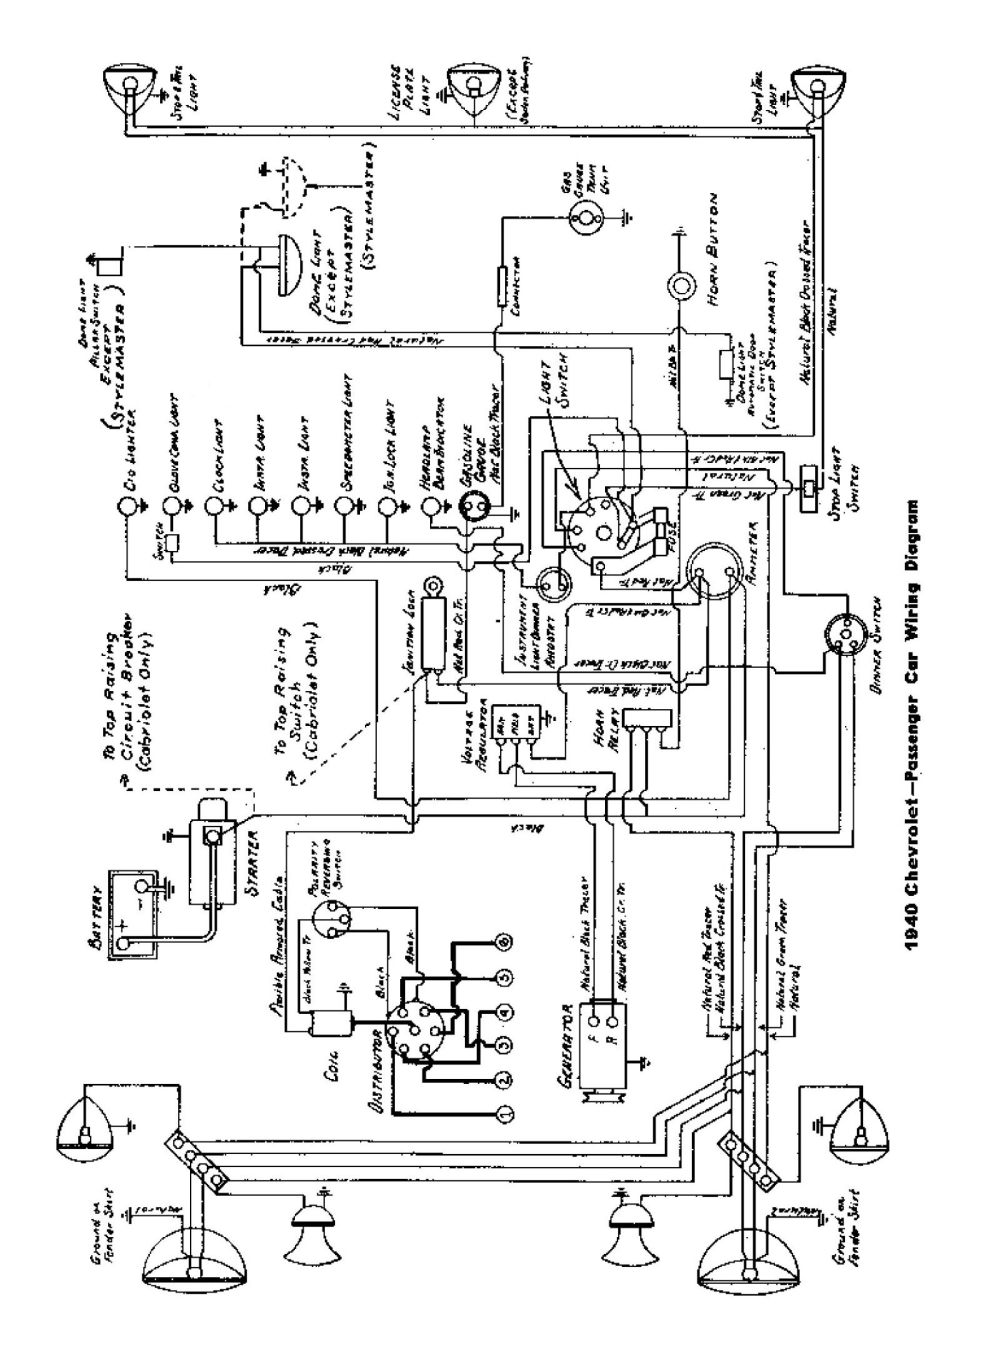 medium resolution of 1952 international truck wiring diagram schematic wiring diagram 1995 international 4700 wiring diagram 1952 international l110